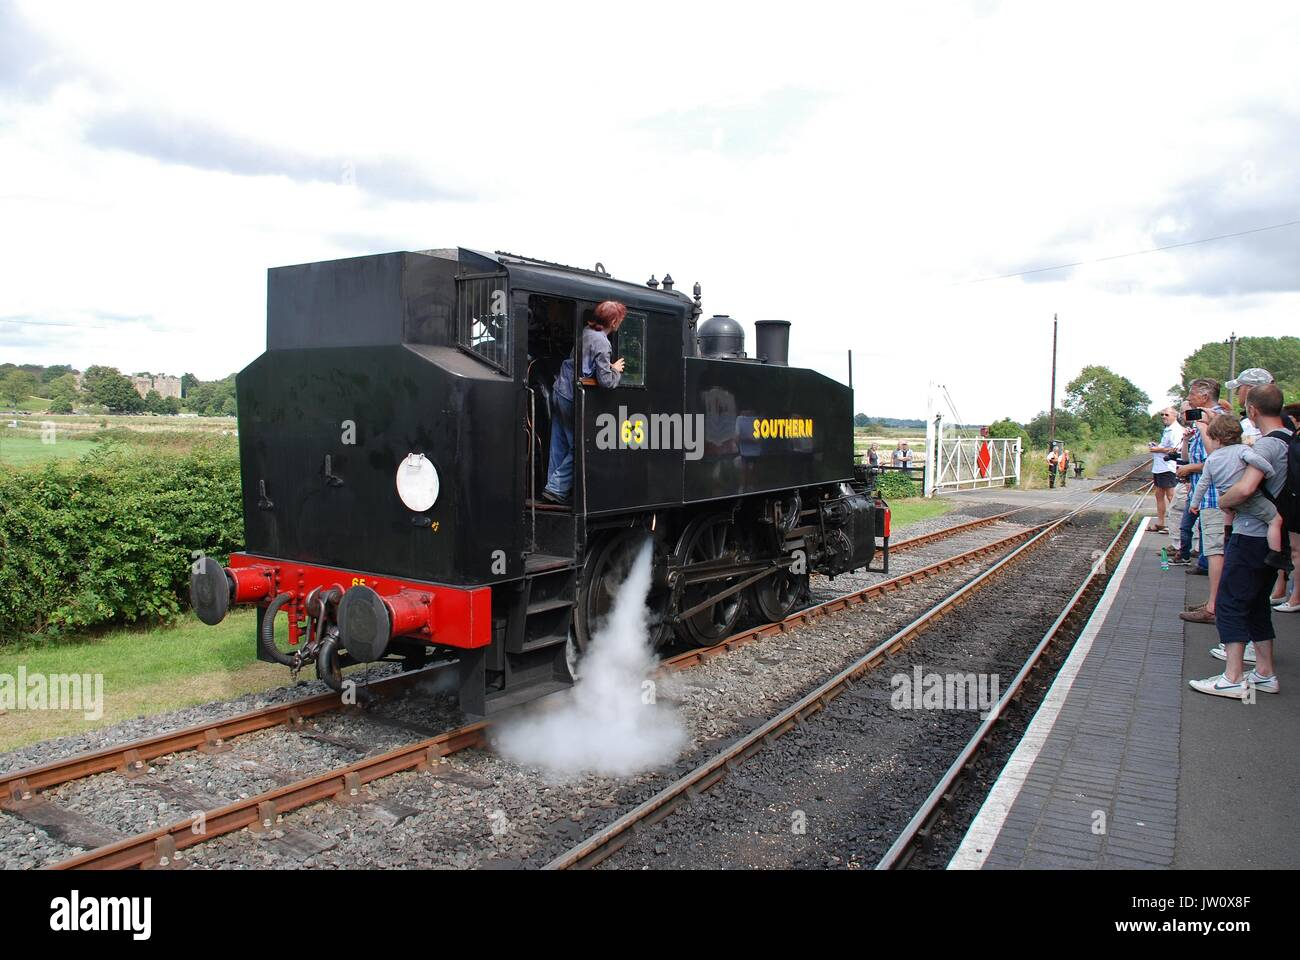 Southern Railway 0-6-0T USA class steam locomotive number 65 switches tracks at Bodiam on the Kent and East Sussex Railway in East Sussex, England. - Stock Image